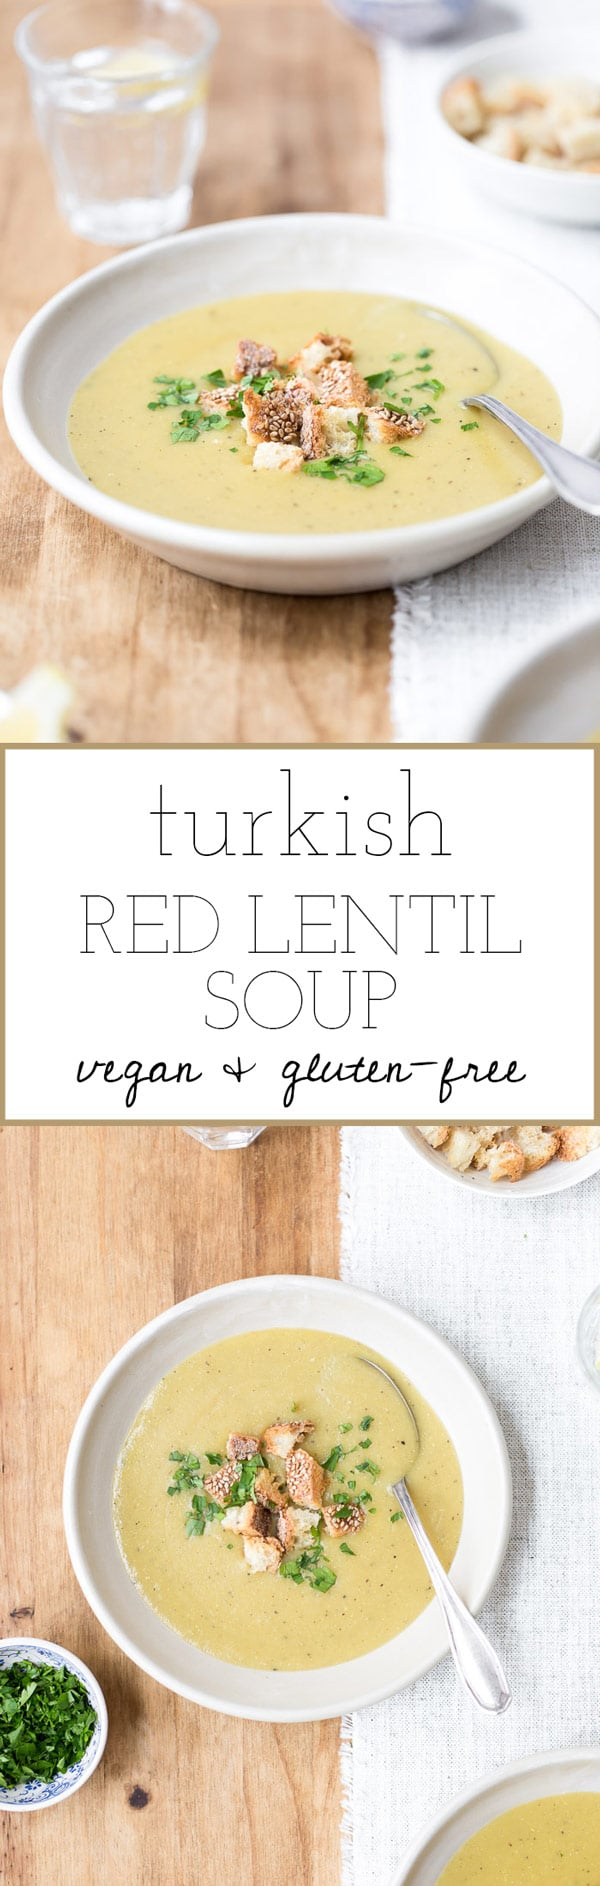 Recipe for mom's Turkish Red Lentil Soup. This soup is vegan, gluten-free and 100% delicious.